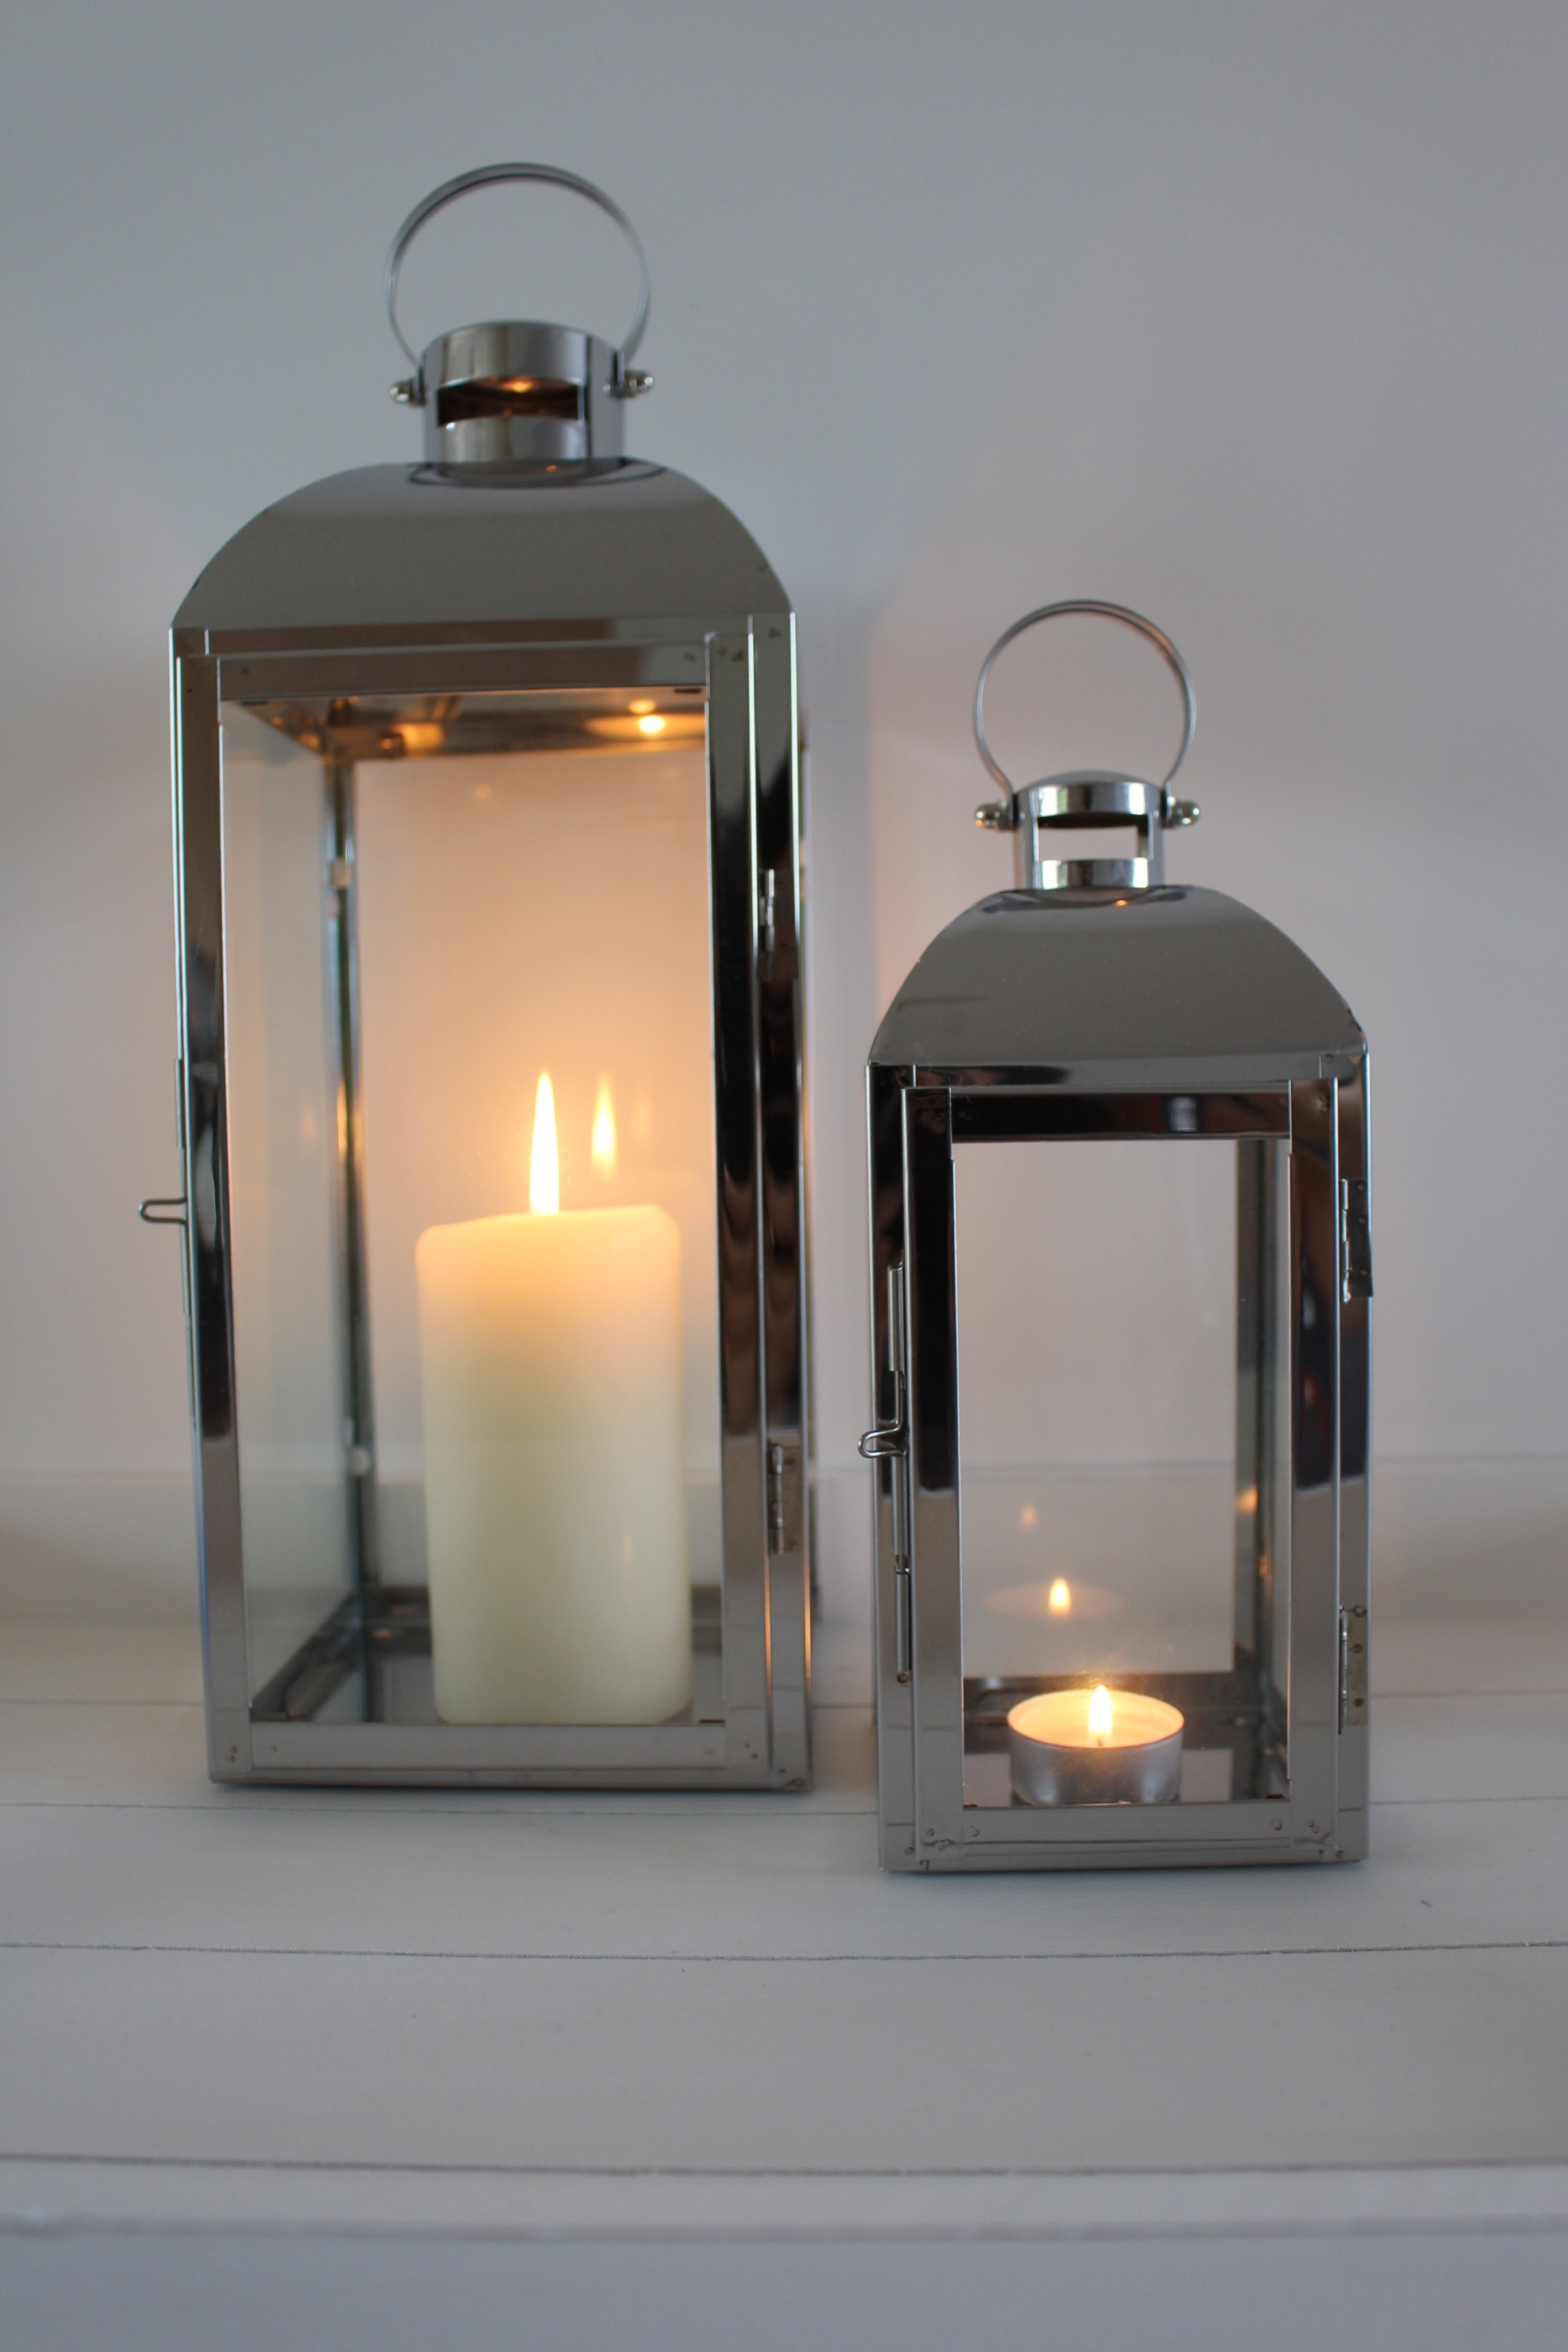 Outdoor Hurricane Lanterns With Regard To Well Known Large Outdoor Hurricane Lantern – Outdoor Ideas (View 17 of 20)